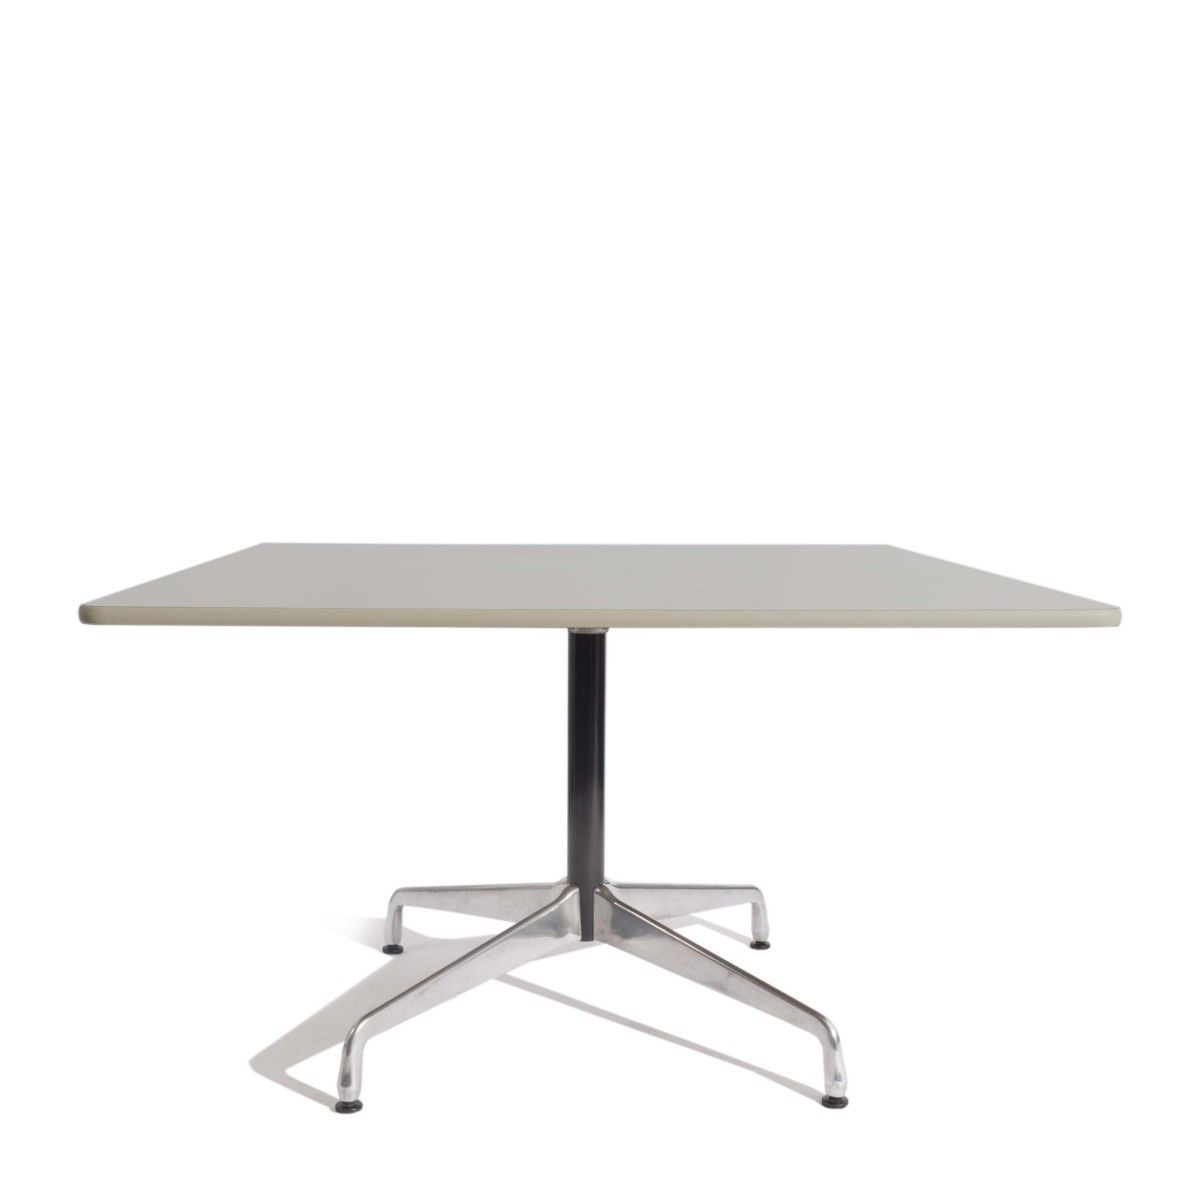 Herman Miller Eames Square Top Table At Decornyc Luxury